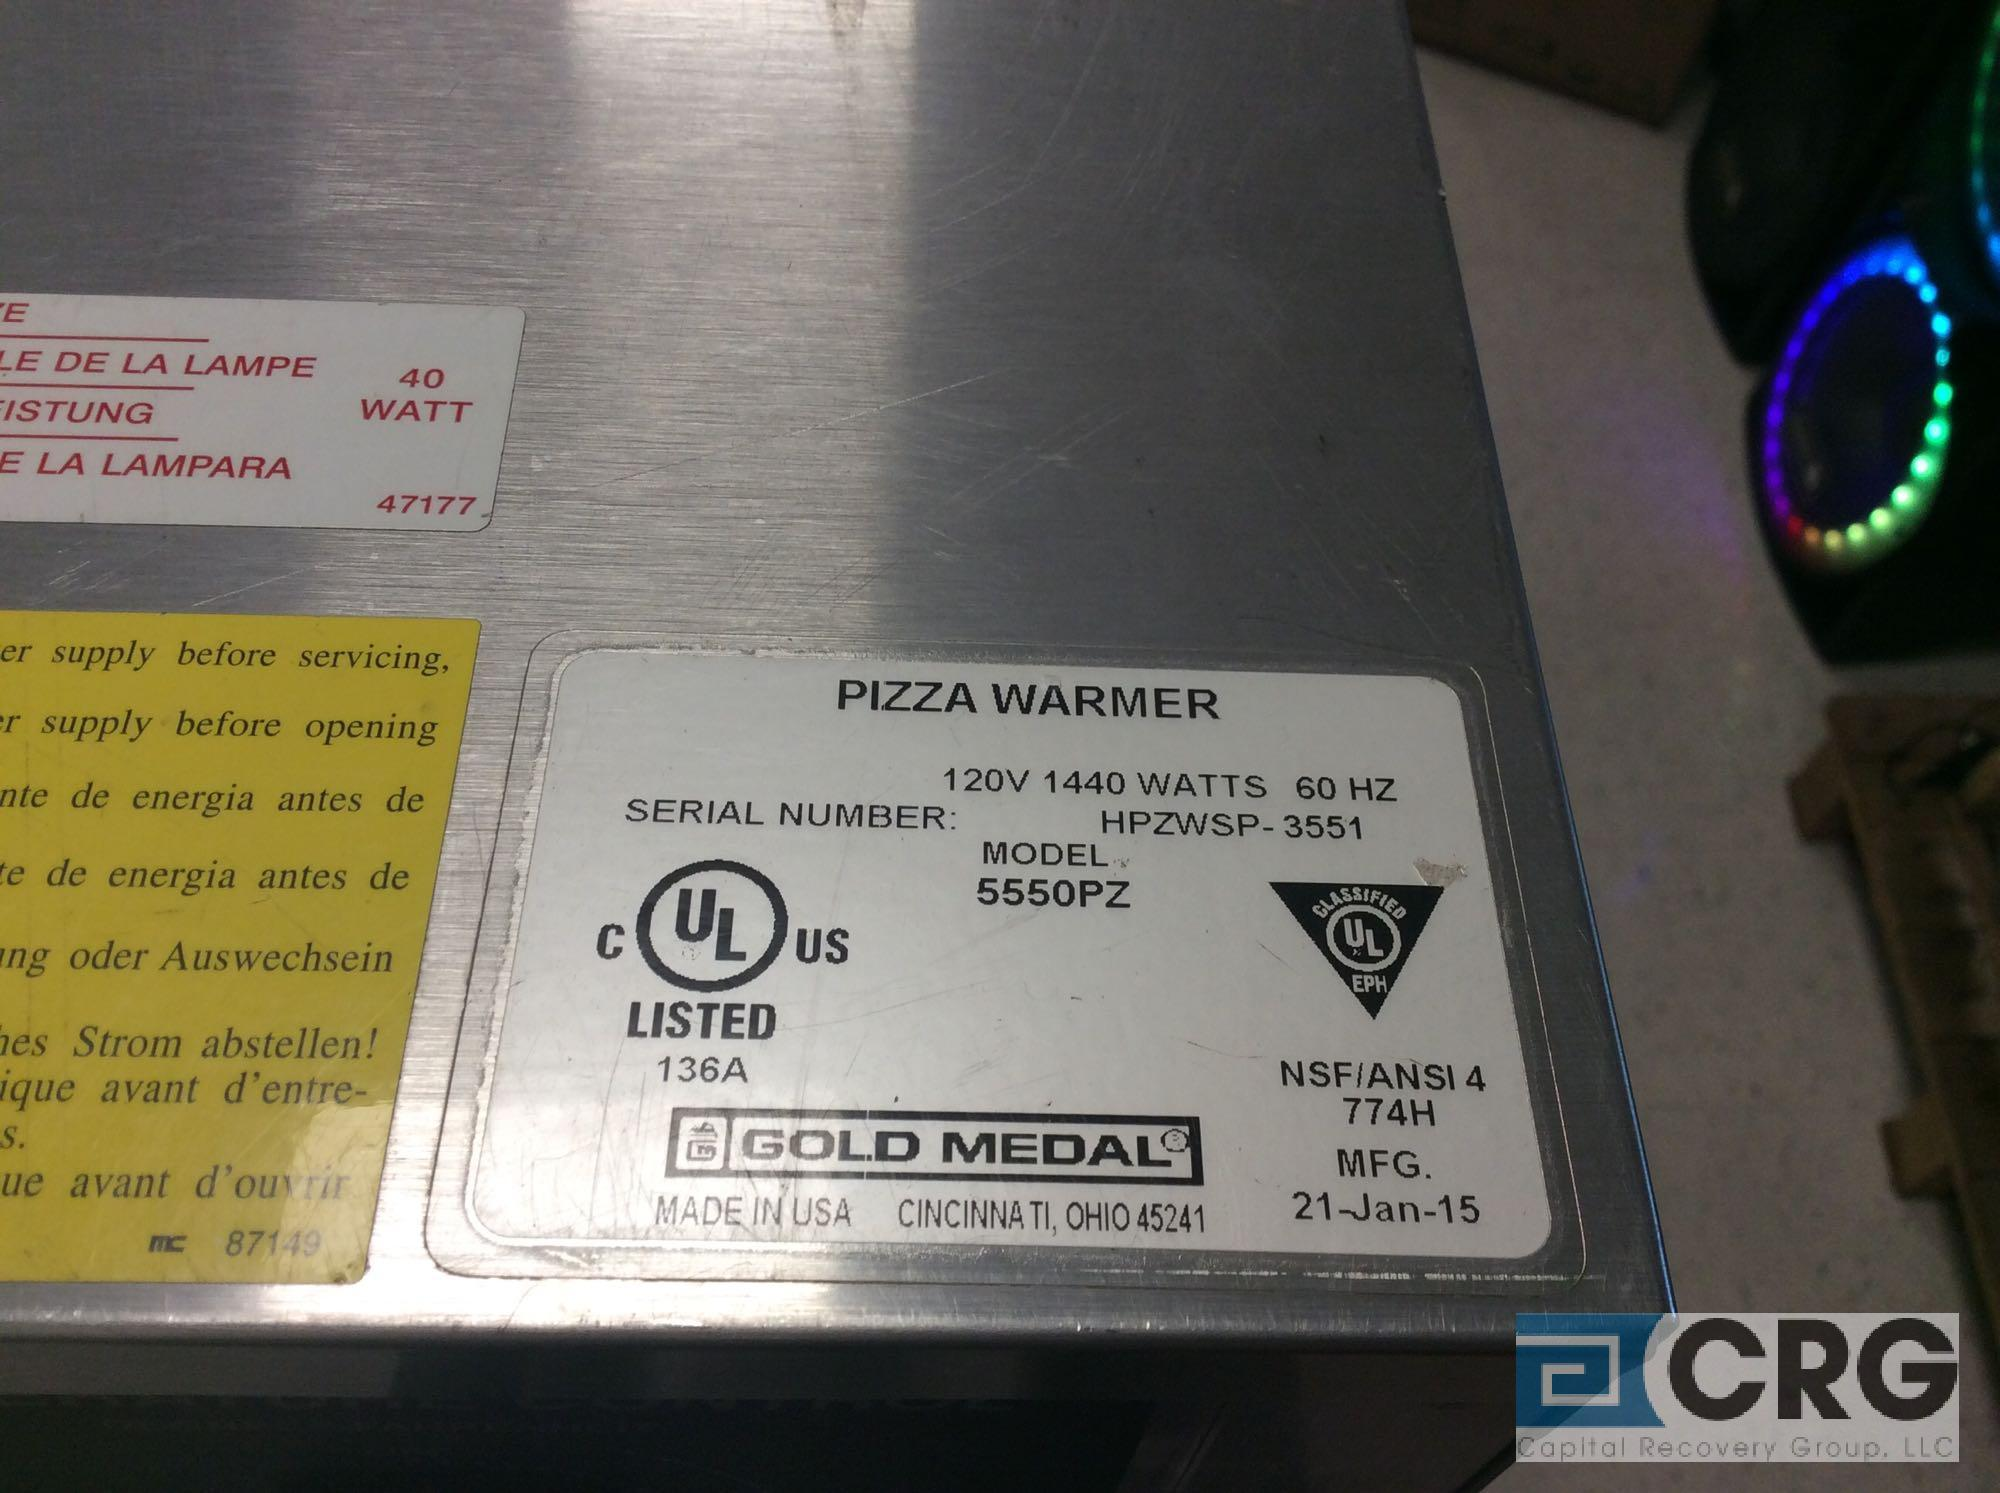 Gold Medal 5550PZ rotary pizza warmer - Image 2 of 2